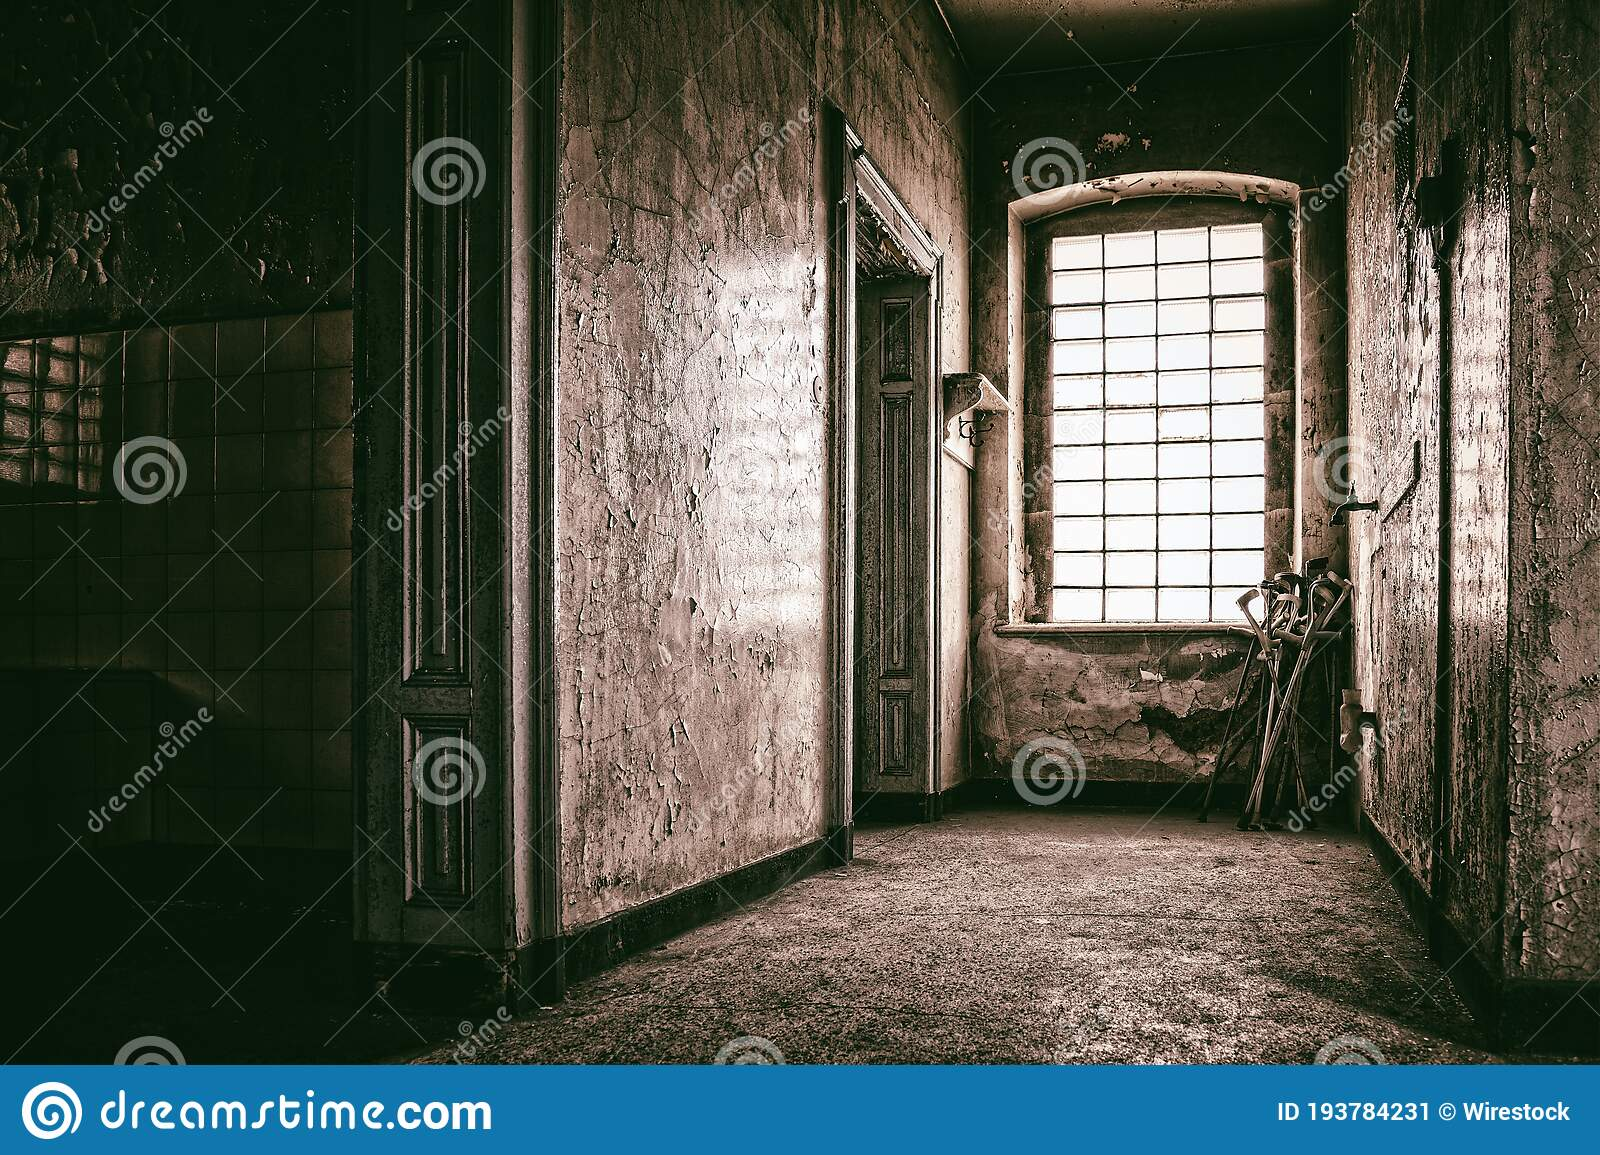 View Inside A Creepy Abandoned House Perfect For A Horror Movie Concept Stock Image Image Of Movie Creepy 193784231